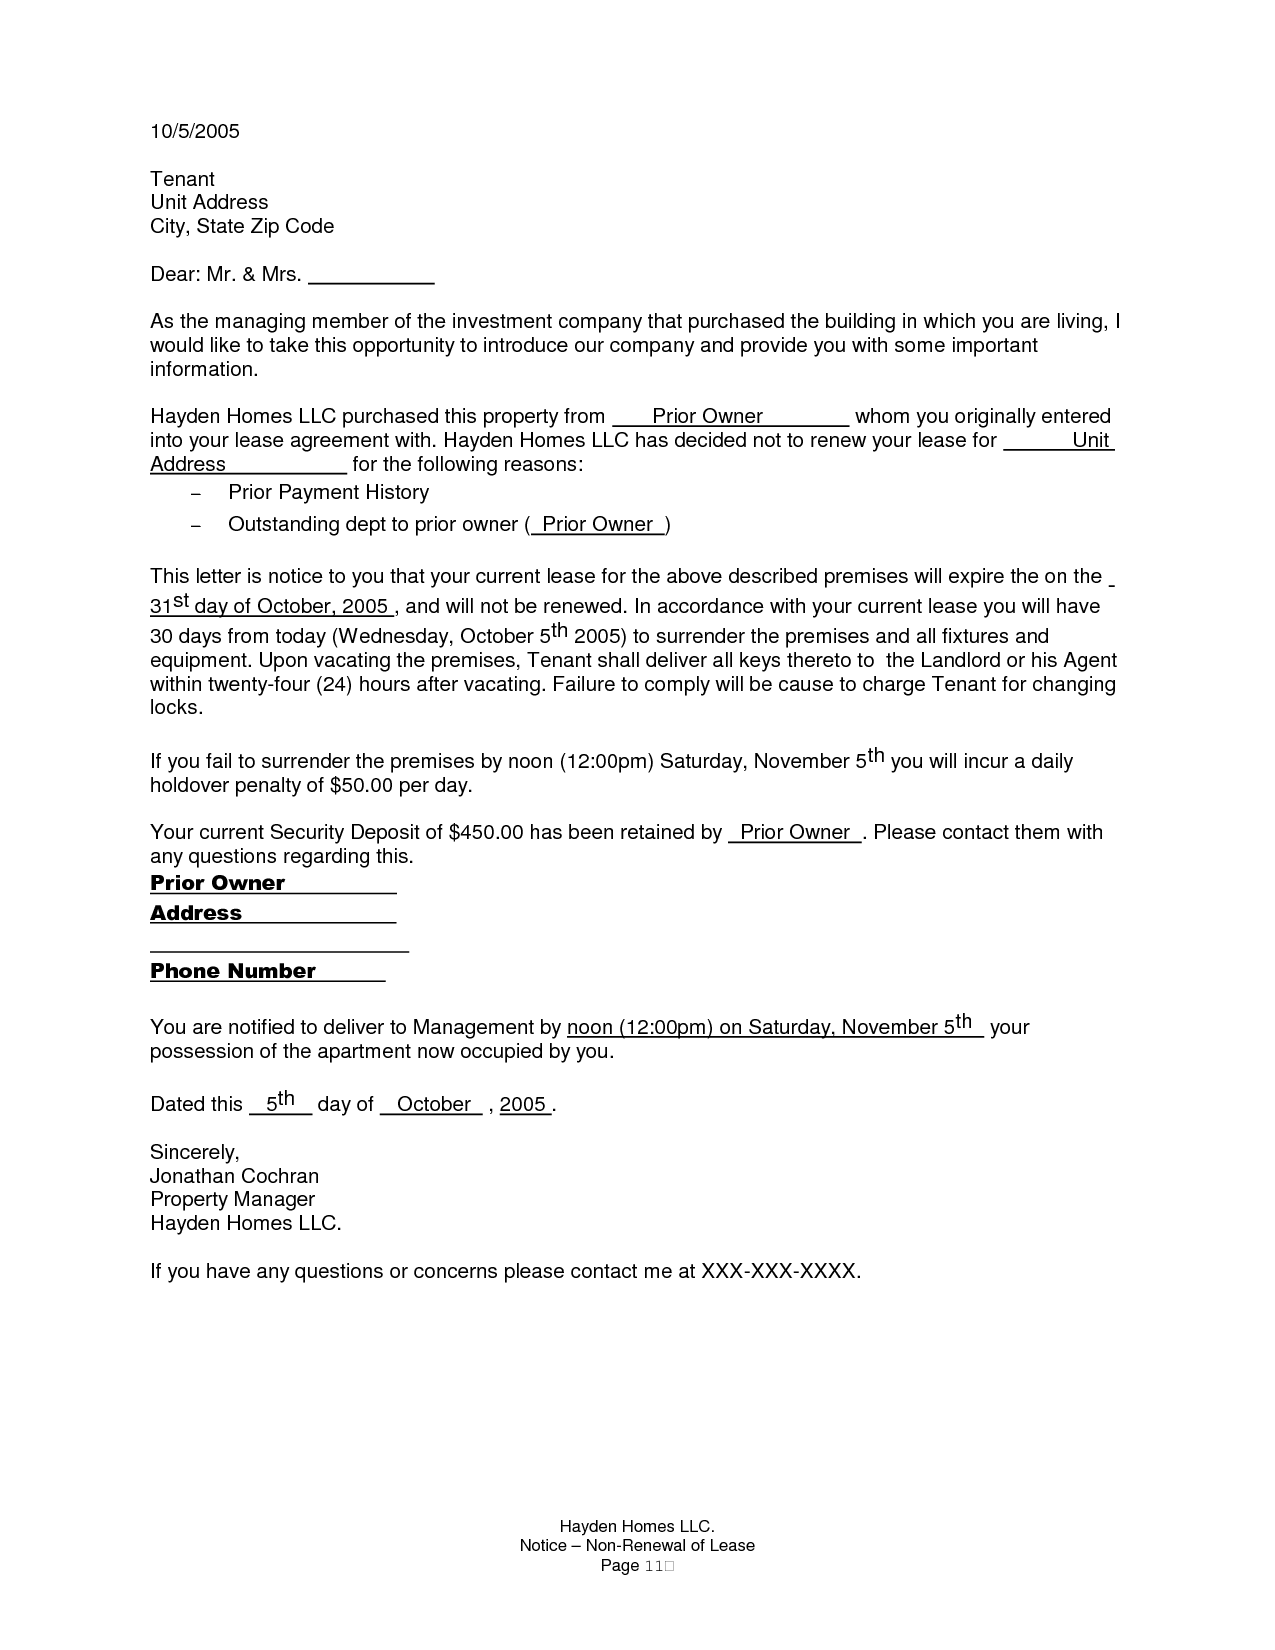 landlord end of tenancy agreement letter template letter idea 2018